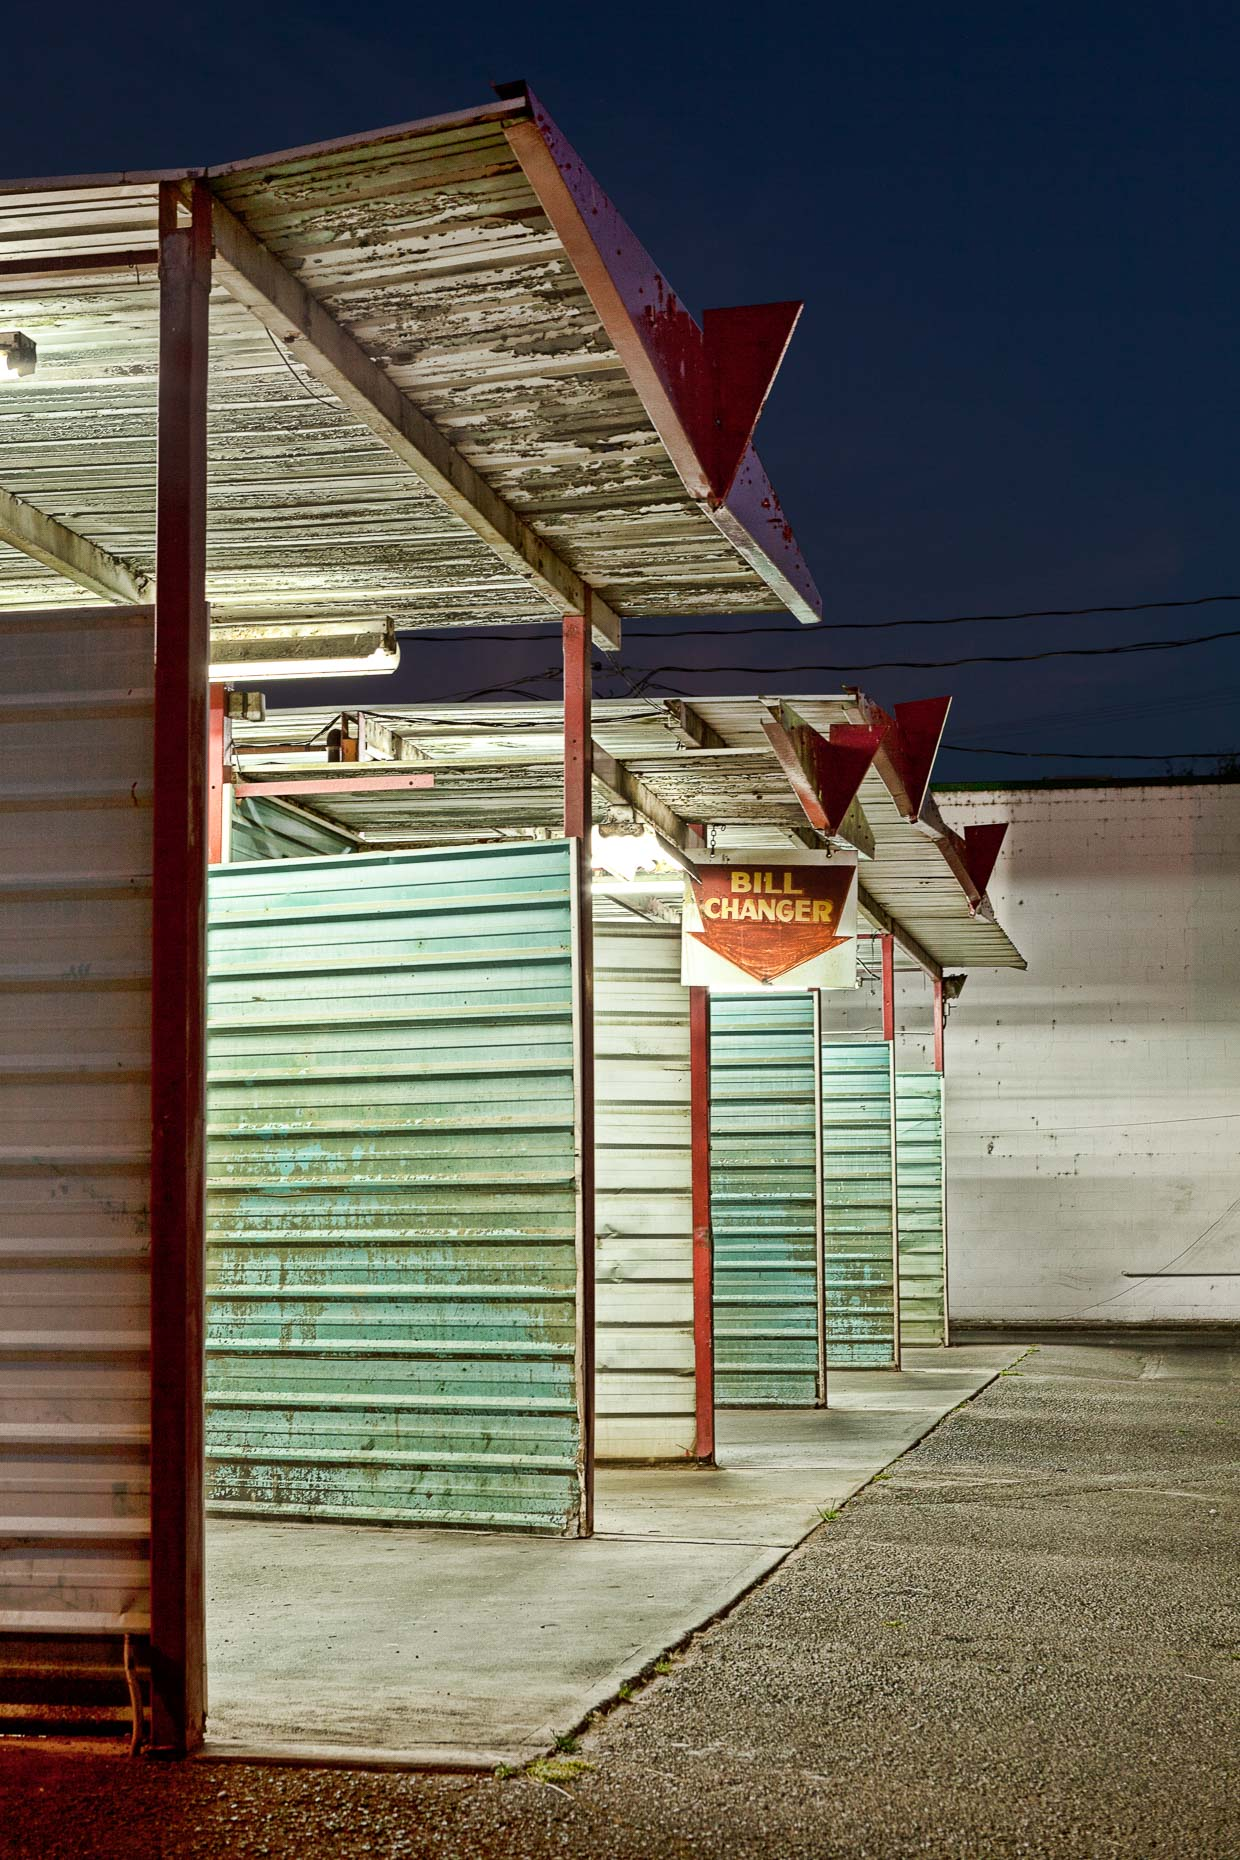 Coin operated car wash at night in Grants Pass, Oregon by David Zaitz